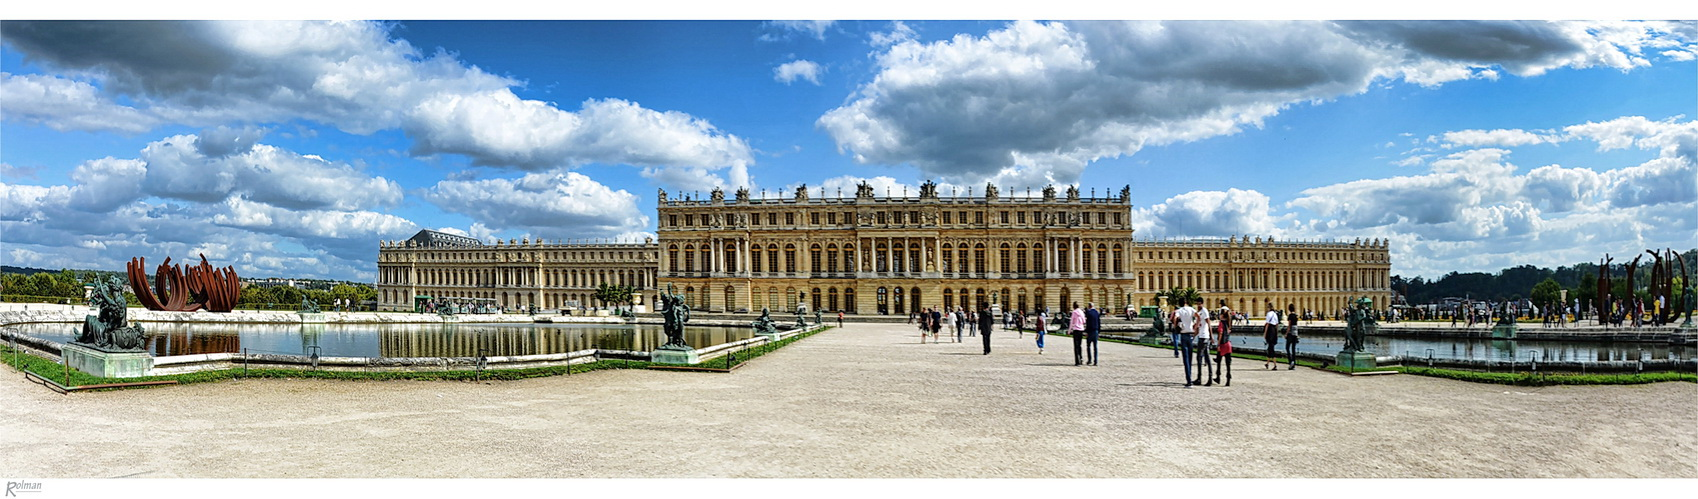 schloss versailles foto bild natur panorama natur kreativ aufnahmetechniken bilder auf. Black Bedroom Furniture Sets. Home Design Ideas